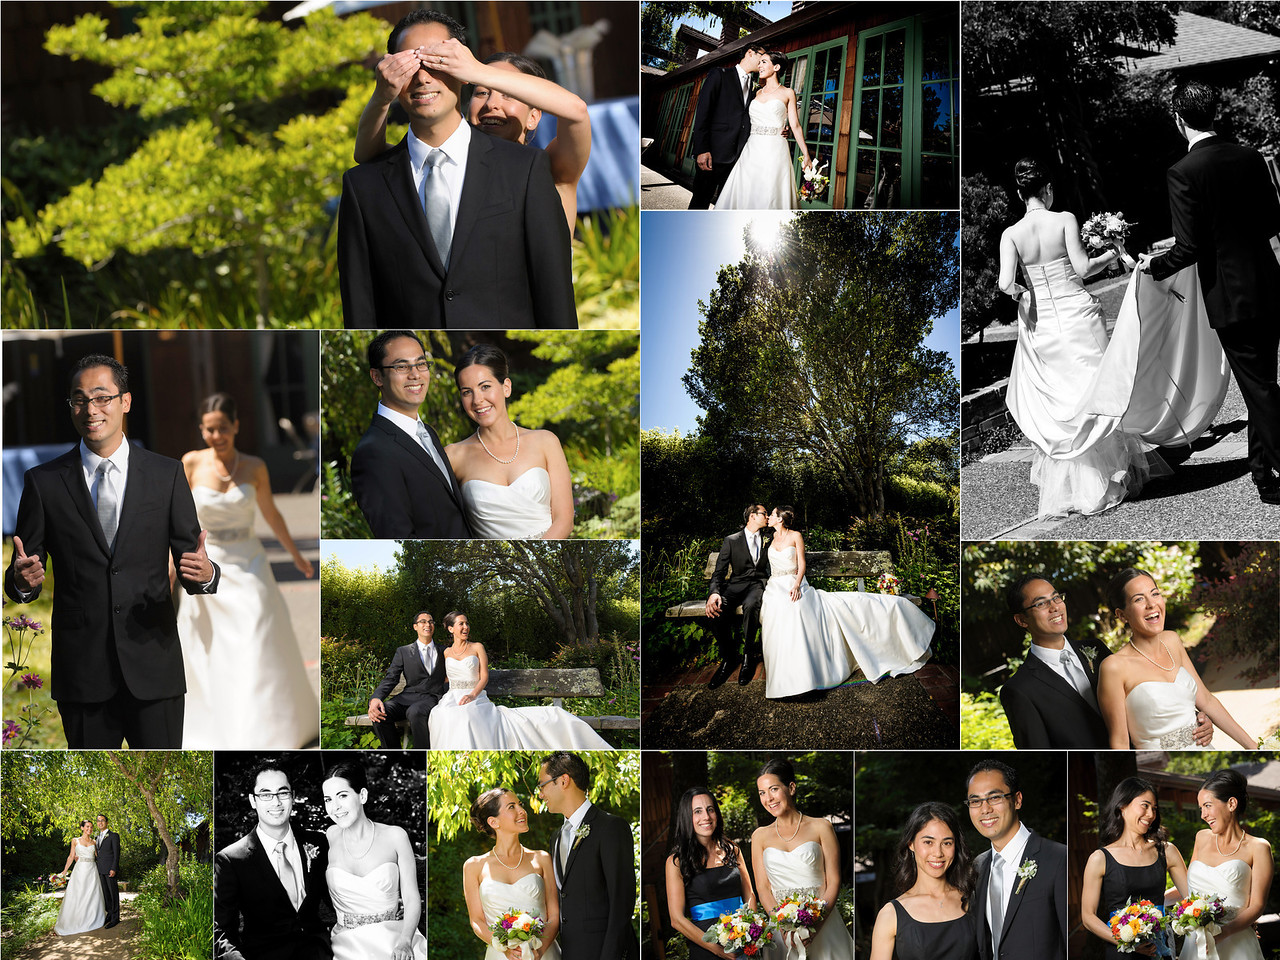 Alyssa_and_Paul_Wedding_Photography_4x6_Photo_Board_03